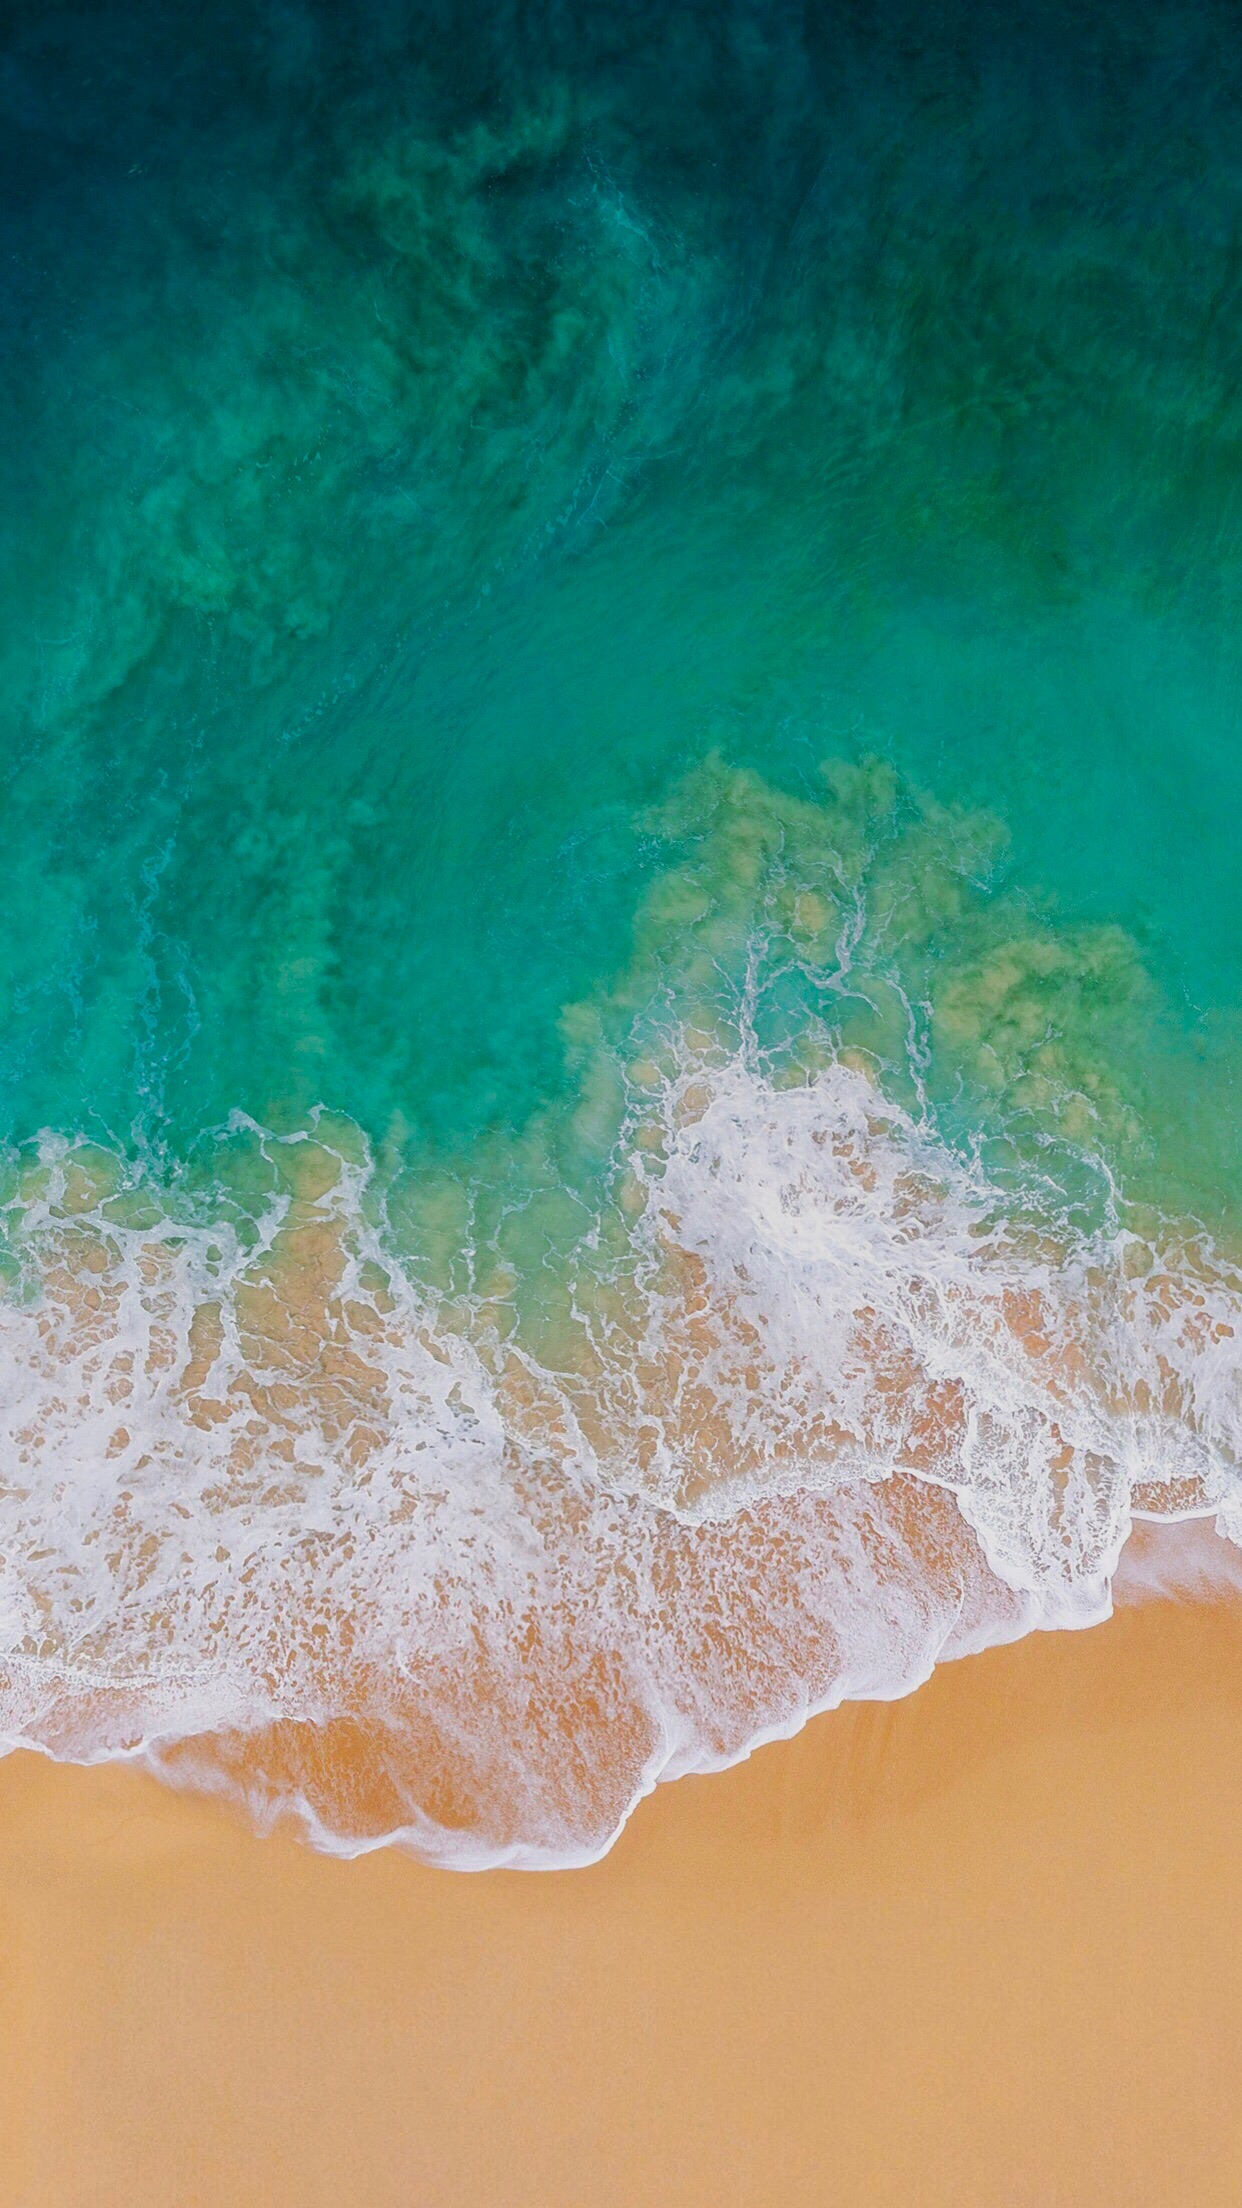 ios wallpaper size: Download And Install The IOS 11 Wallpaper For IPhone, IPad